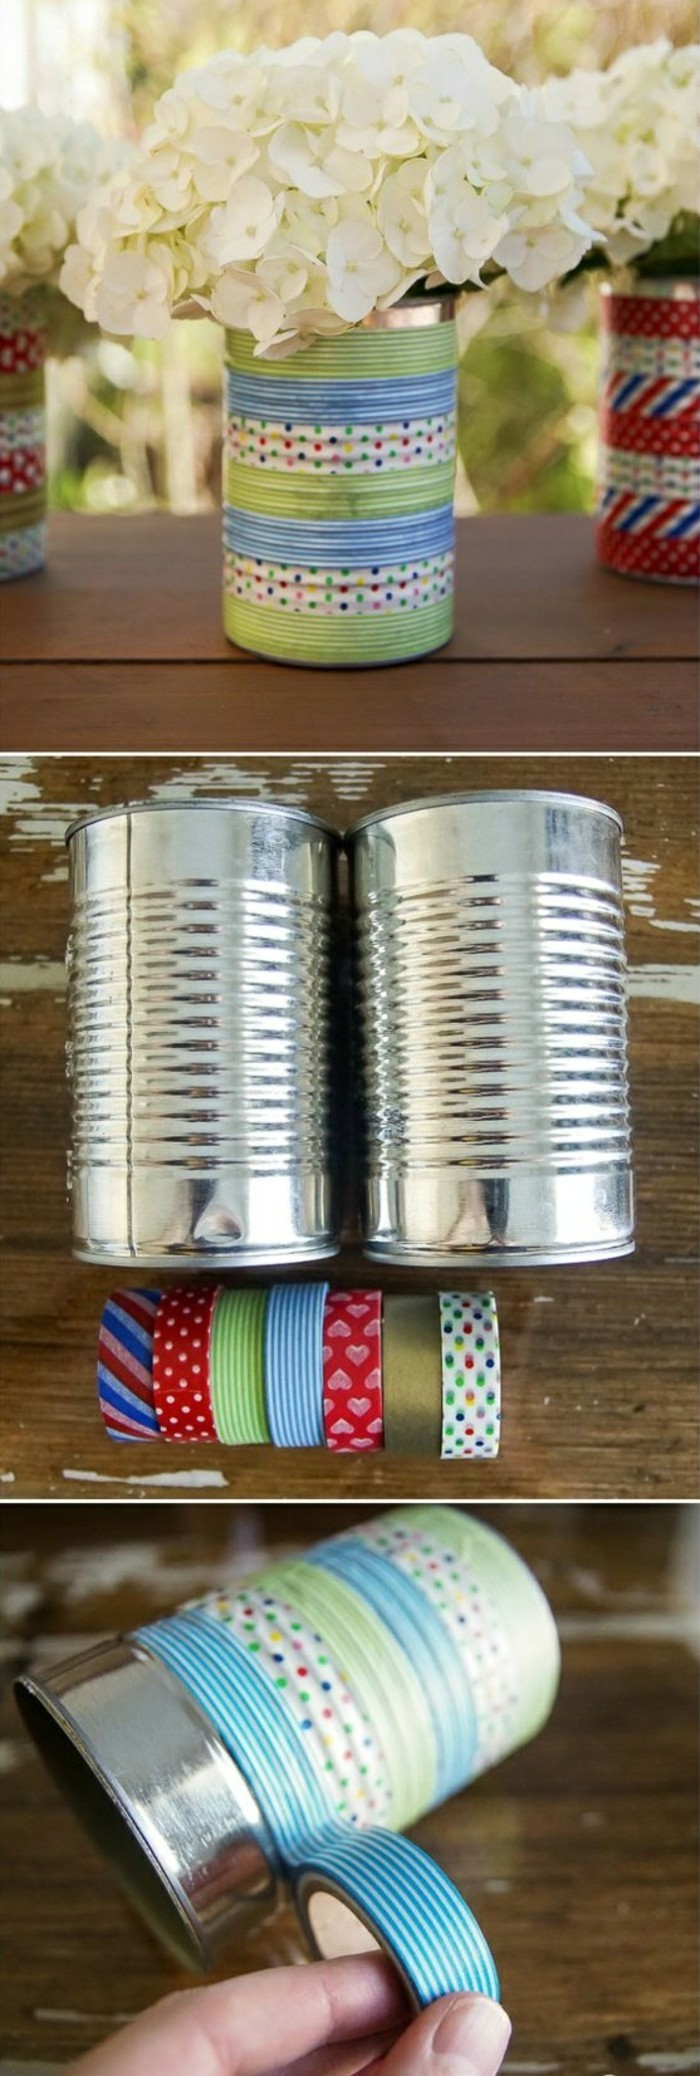 metal tin containers, several vases made from tins containing white hydrangeas, decorated with multicolored washi tape, had wrapping tape around a can